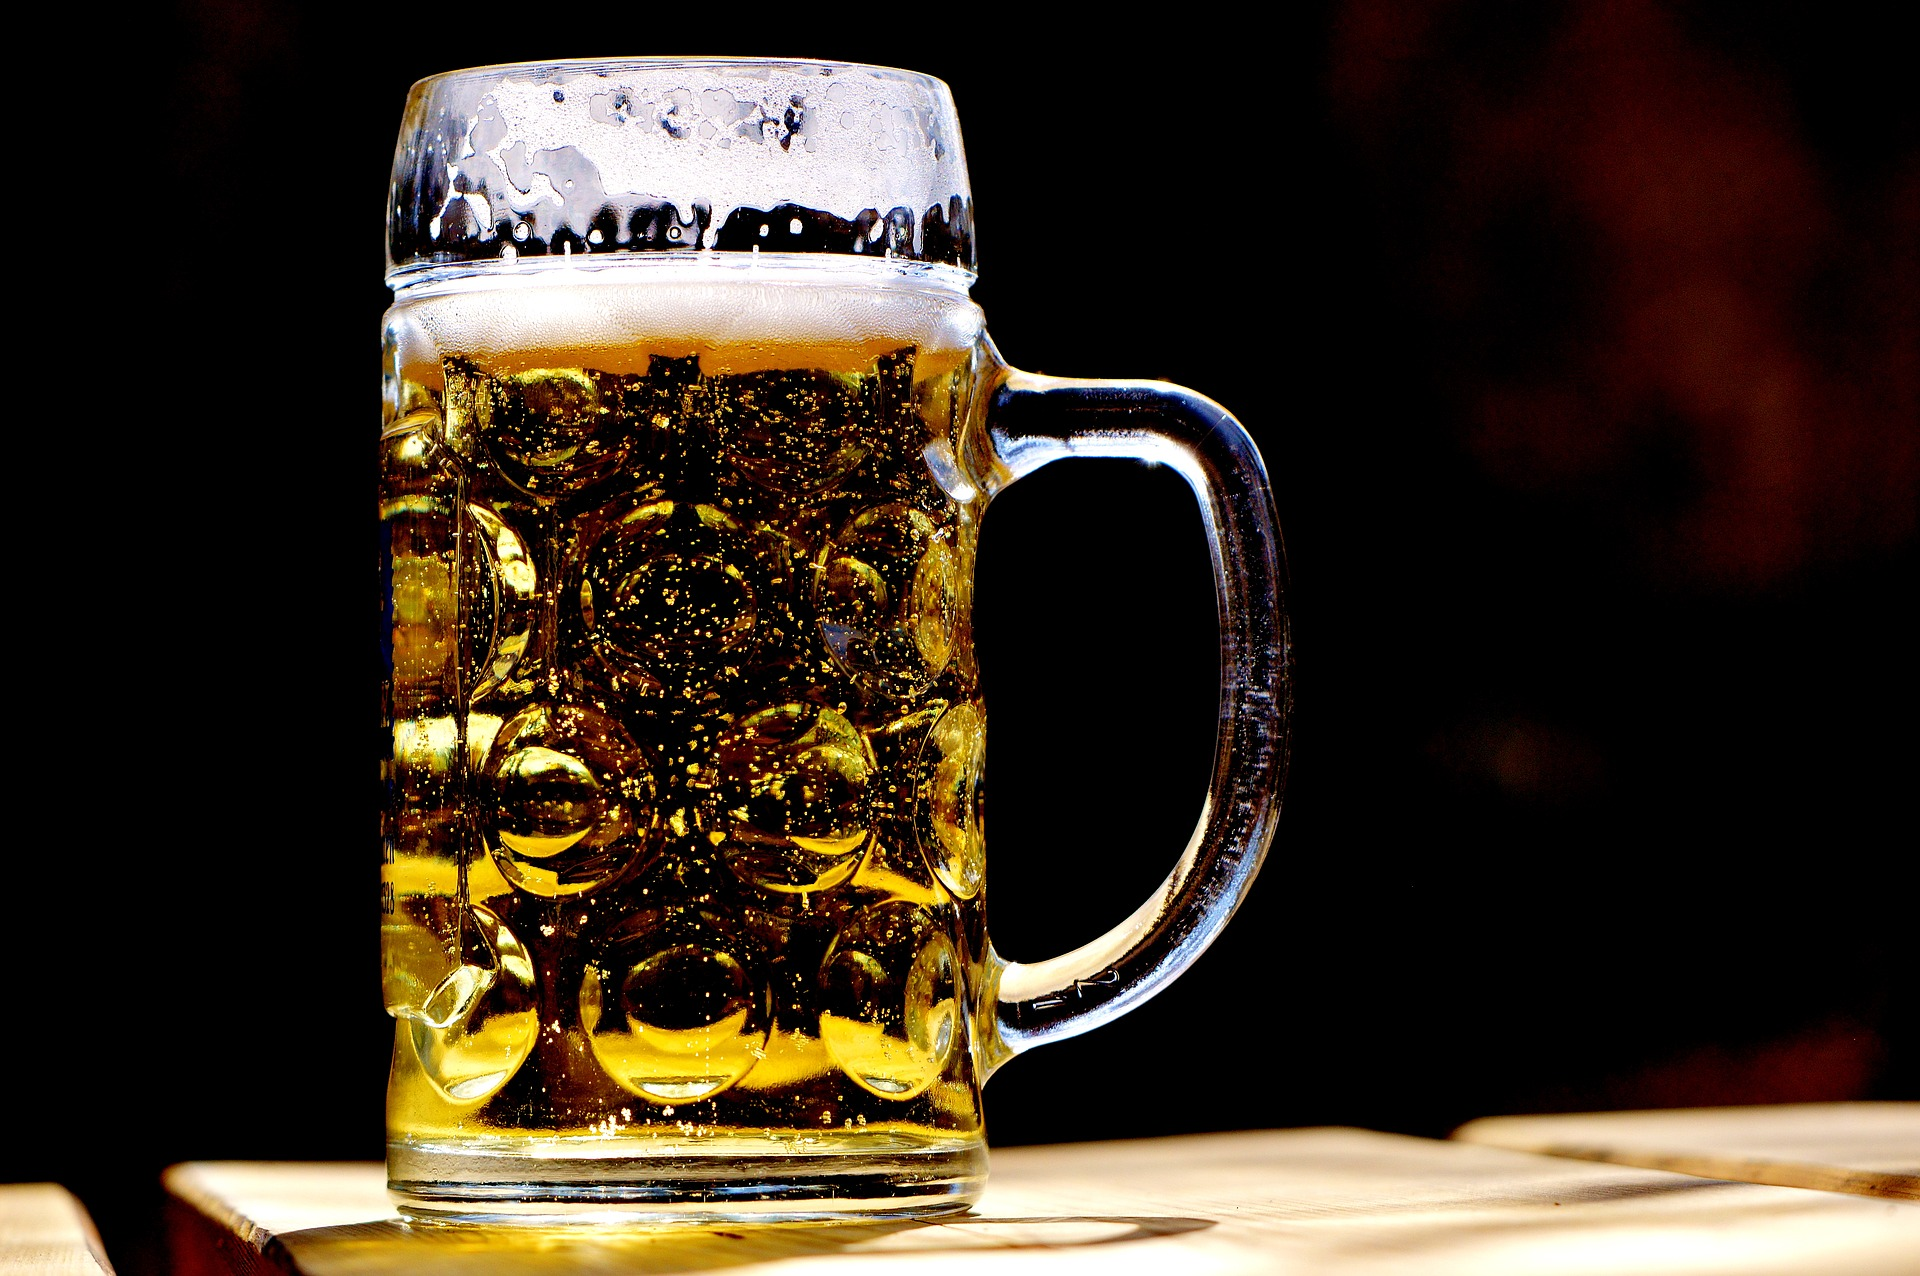 Image of a stein glass